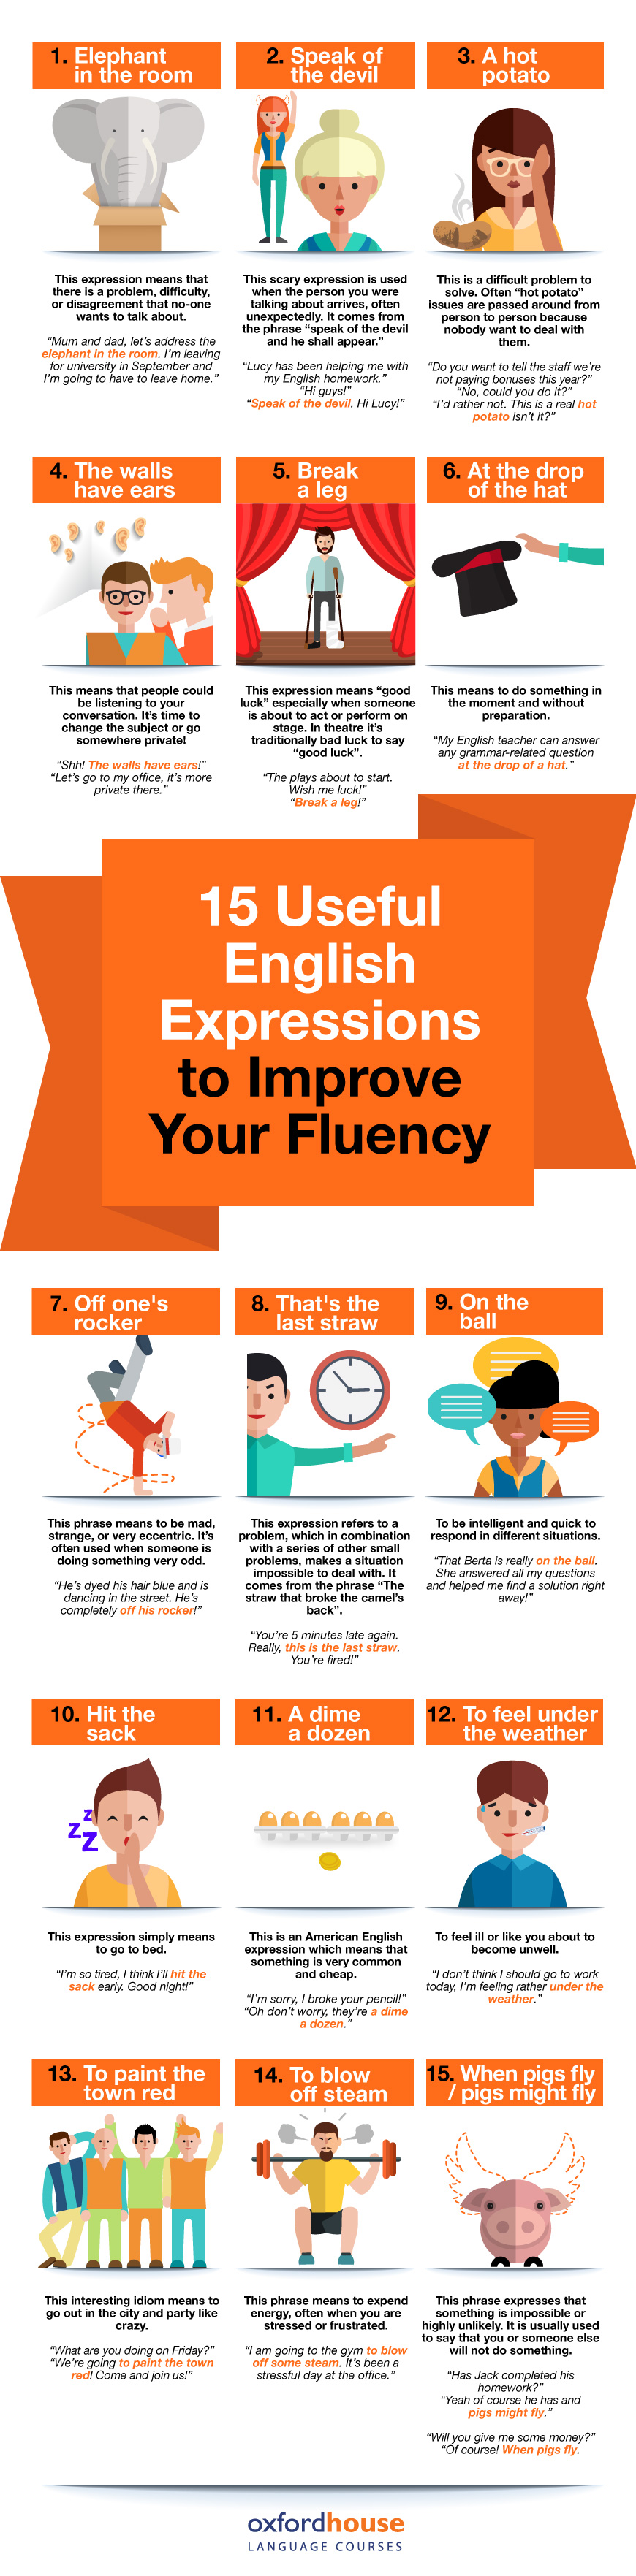 15 Useful English Expressions to Improve your Fluency [Infographic] | Oxford House Barcelona